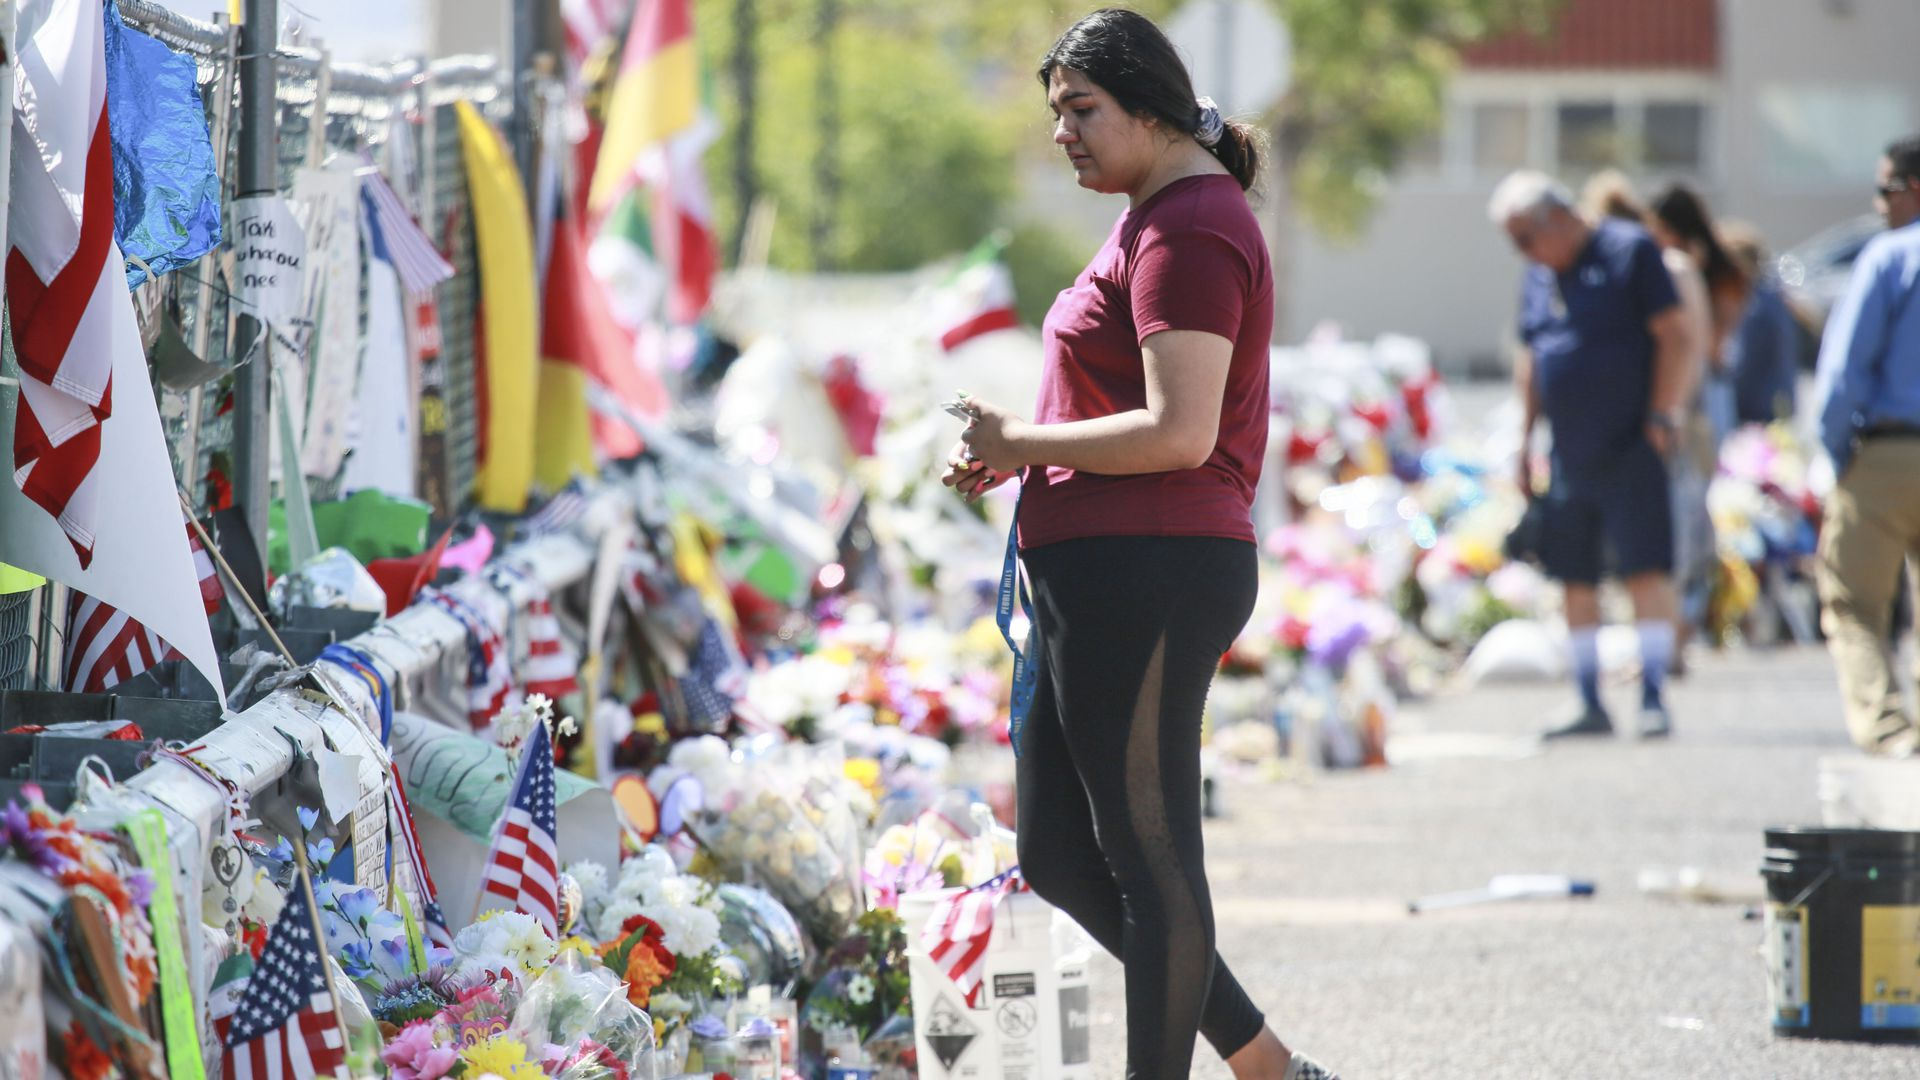 A woman paying her respects at a makeshift memorial for the victims in El Paso. Photo: Sandy Huffaker/Getty Images